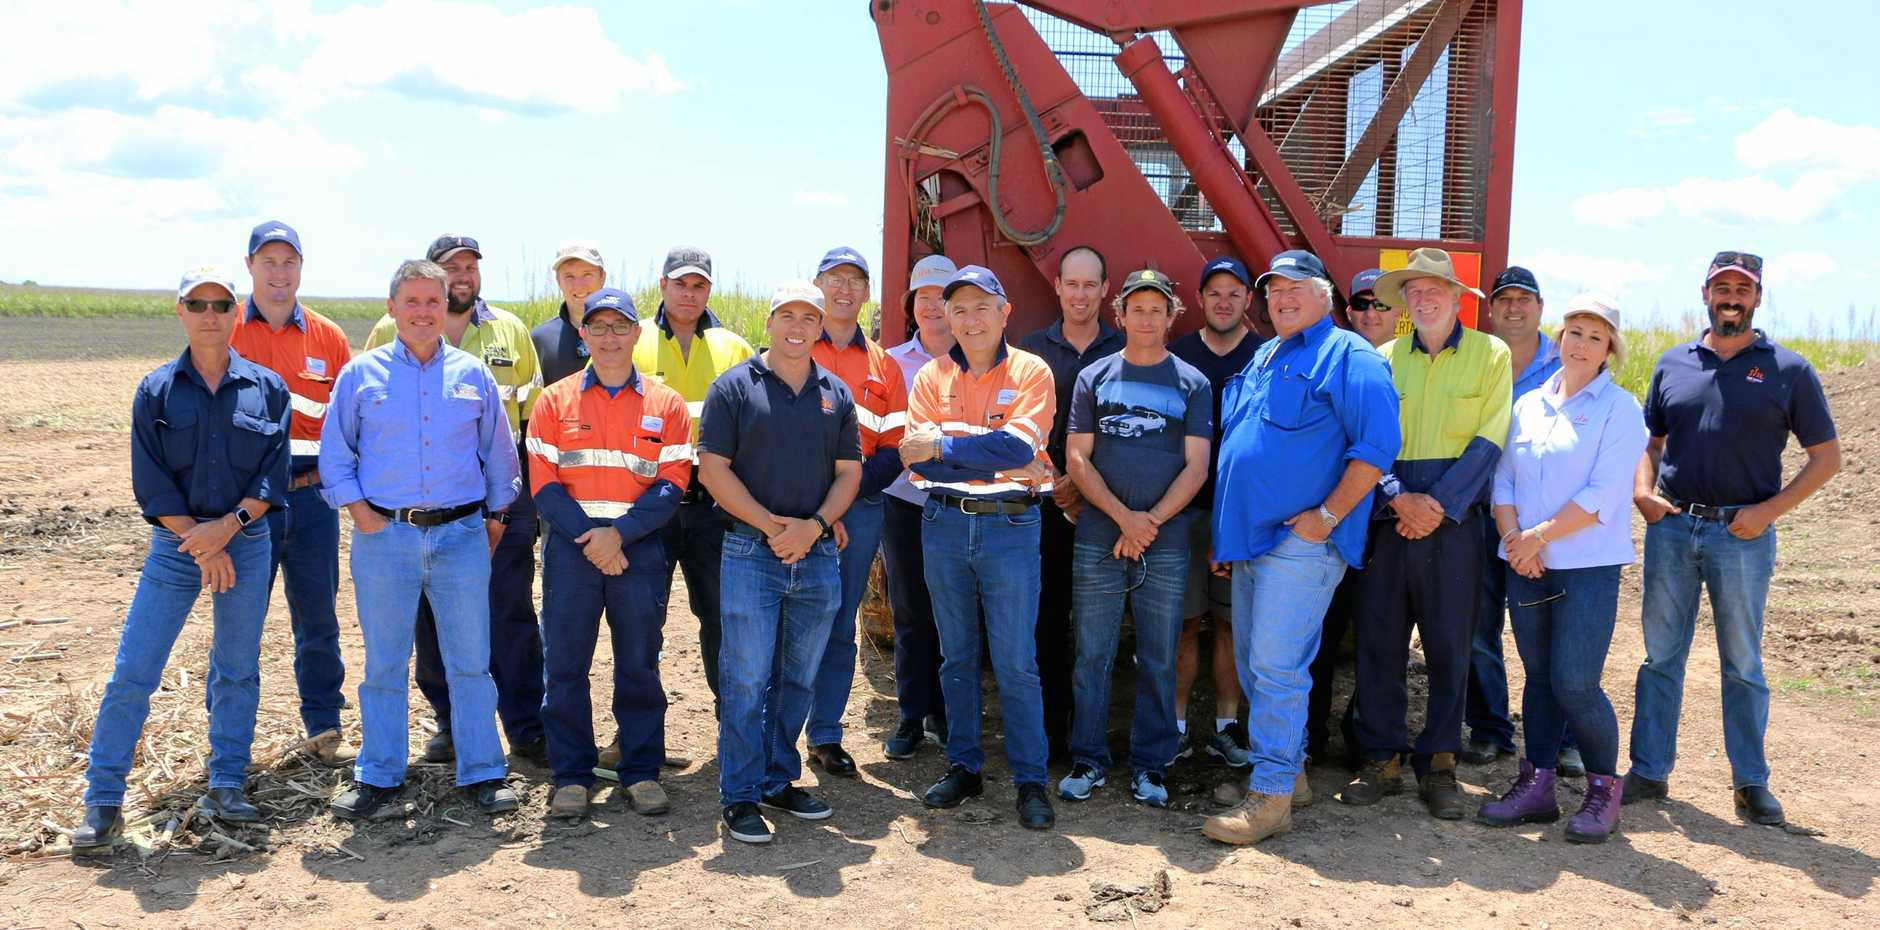 STUDY GROUP: A group of sugar cane growers and millers from North Queensland recently visited Childers to learn about harvesting efficiency from their local counterparts.